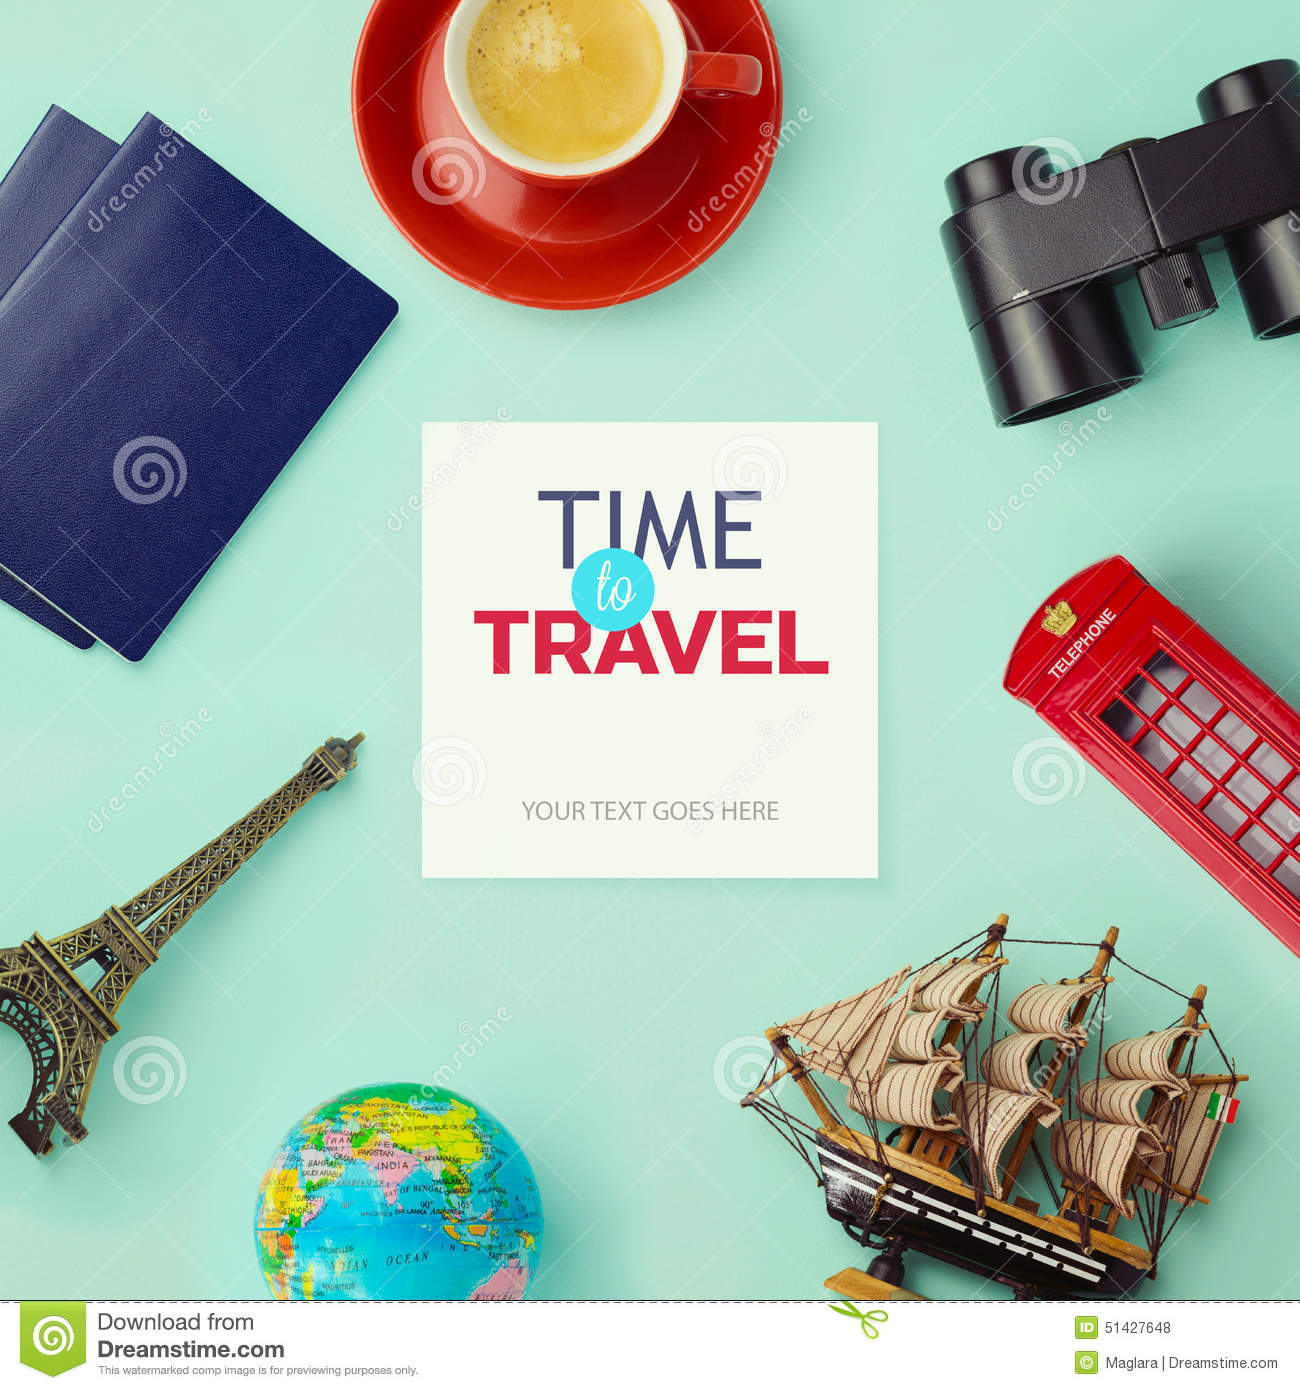 Travel concept mock up design. Objects related to travel and tourism around blank paper. View from above